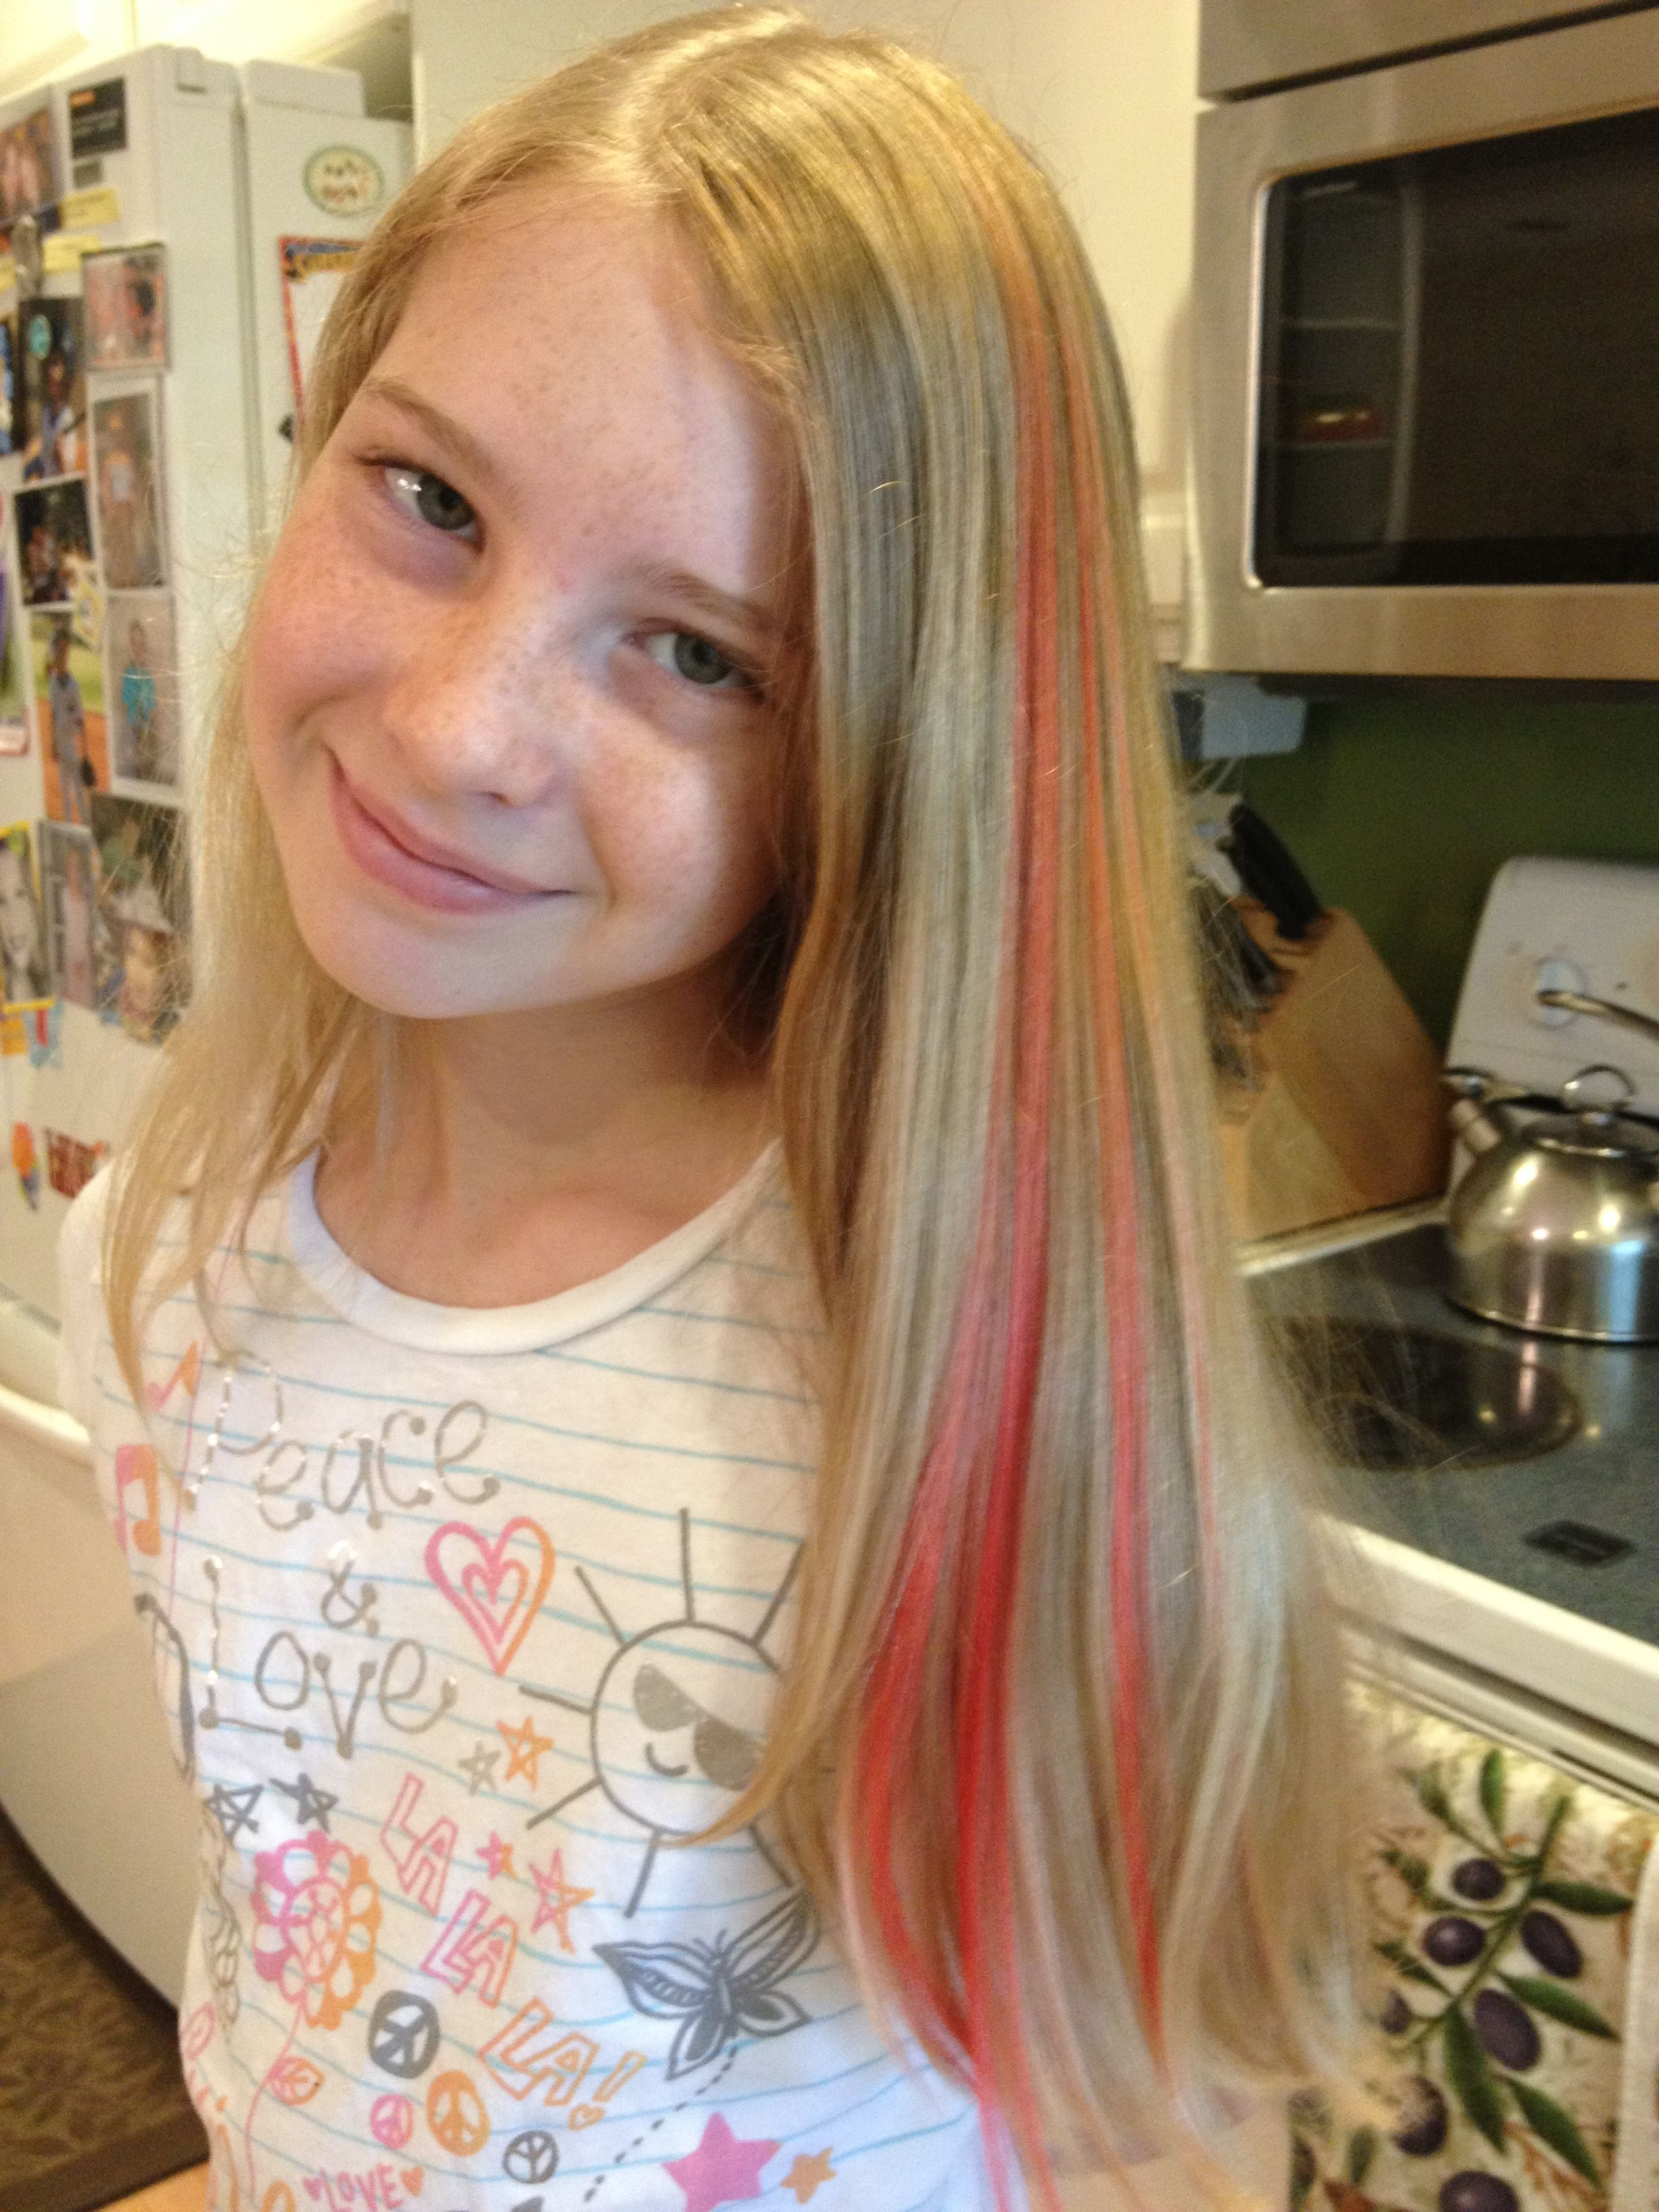 Red Kool Aid Dip Dye Hair I Used A Pack Of Watermelon And A Pack Of Pink Lemonade Boiled Followed By A Pink Lemonade And Conditioner Paste To Try And Lighten I